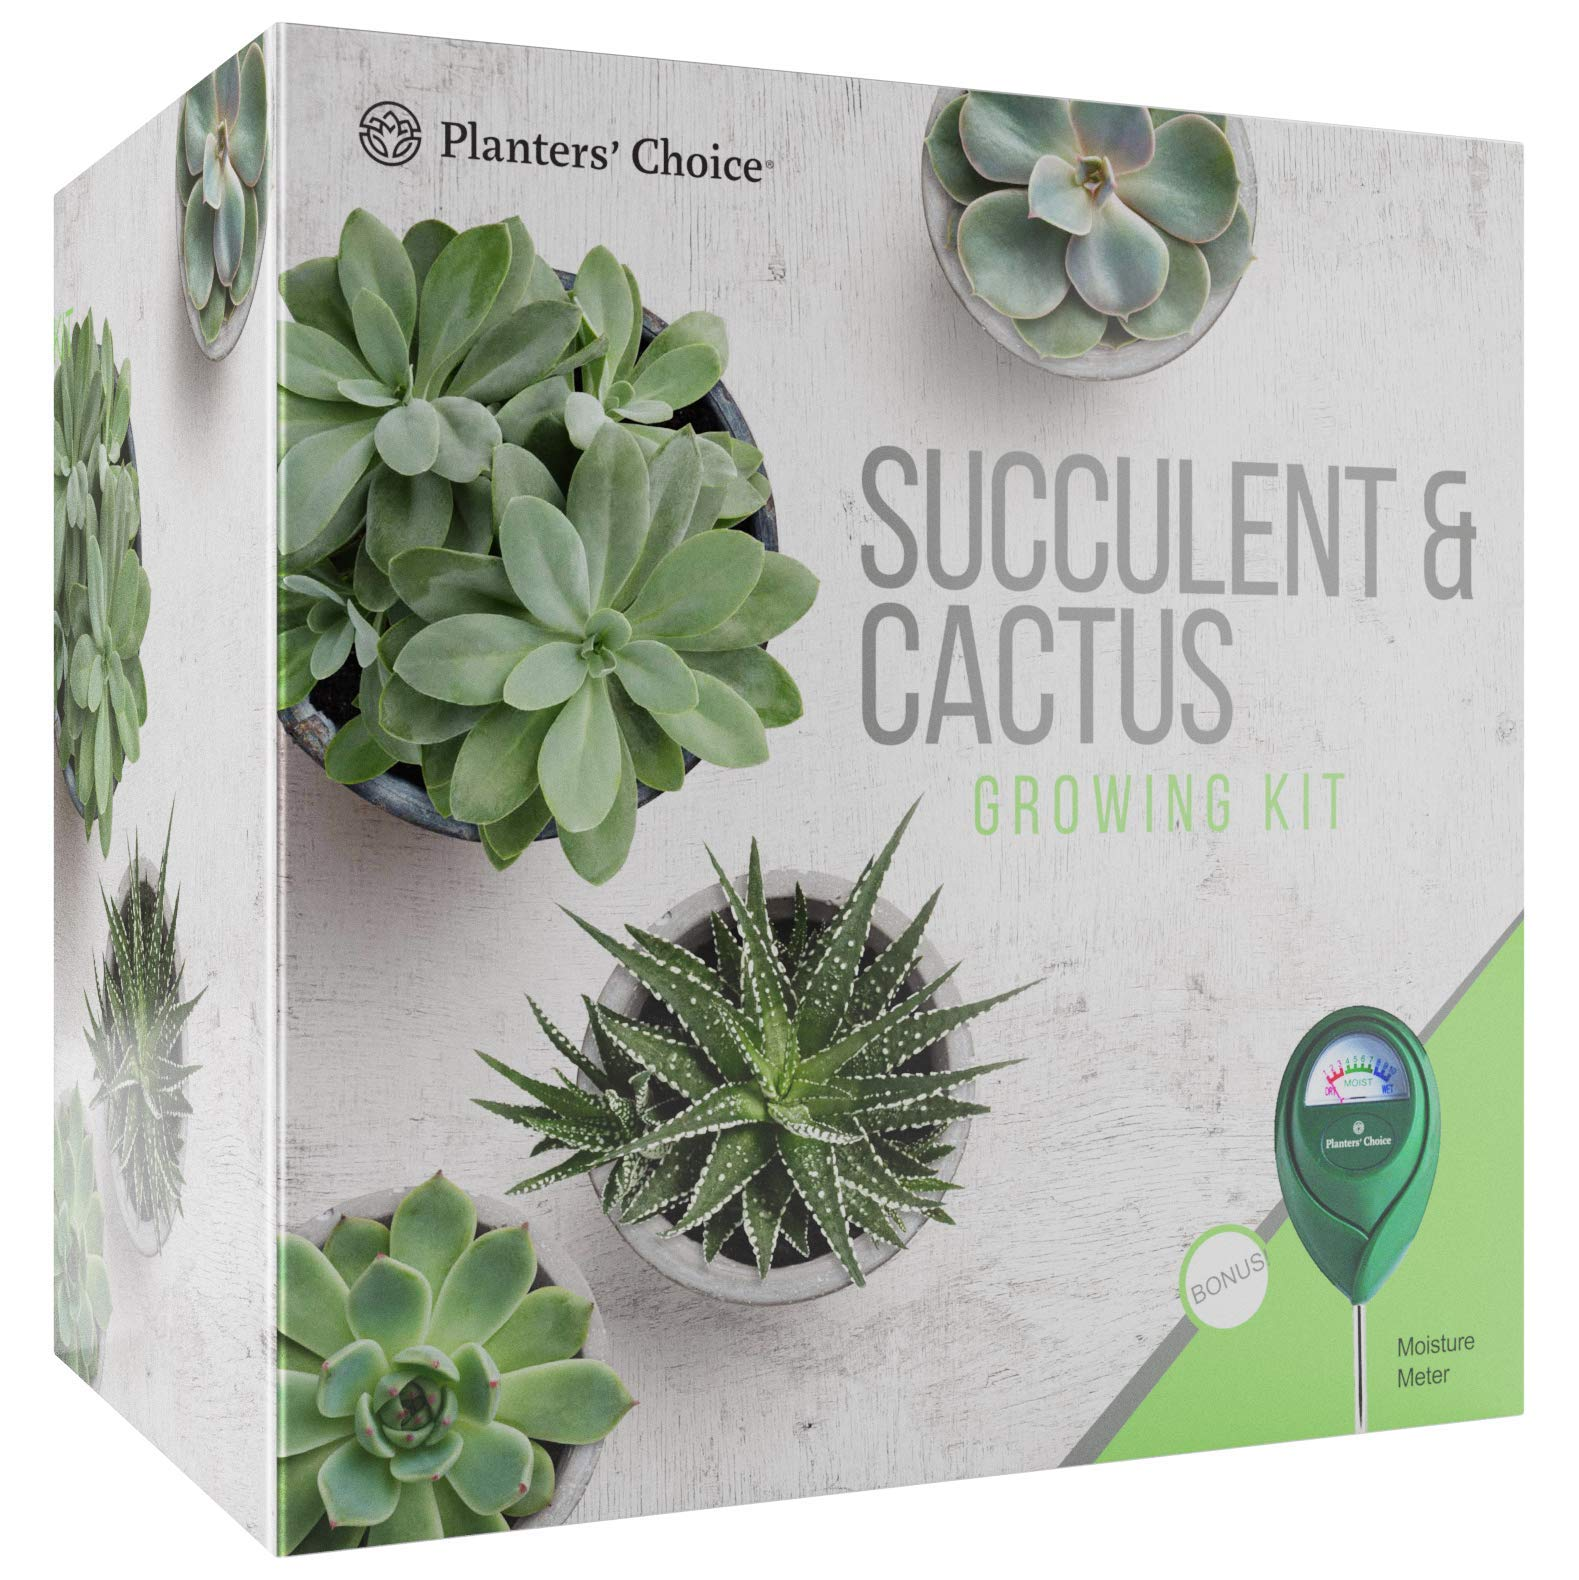 Succulent & Cactus Growing Kit with Moisture Meter - Grow 4 Plants - Includes Everything Needed to Grow Successfully - Great Gift (Cactus & Succulent) by Planters' Choice